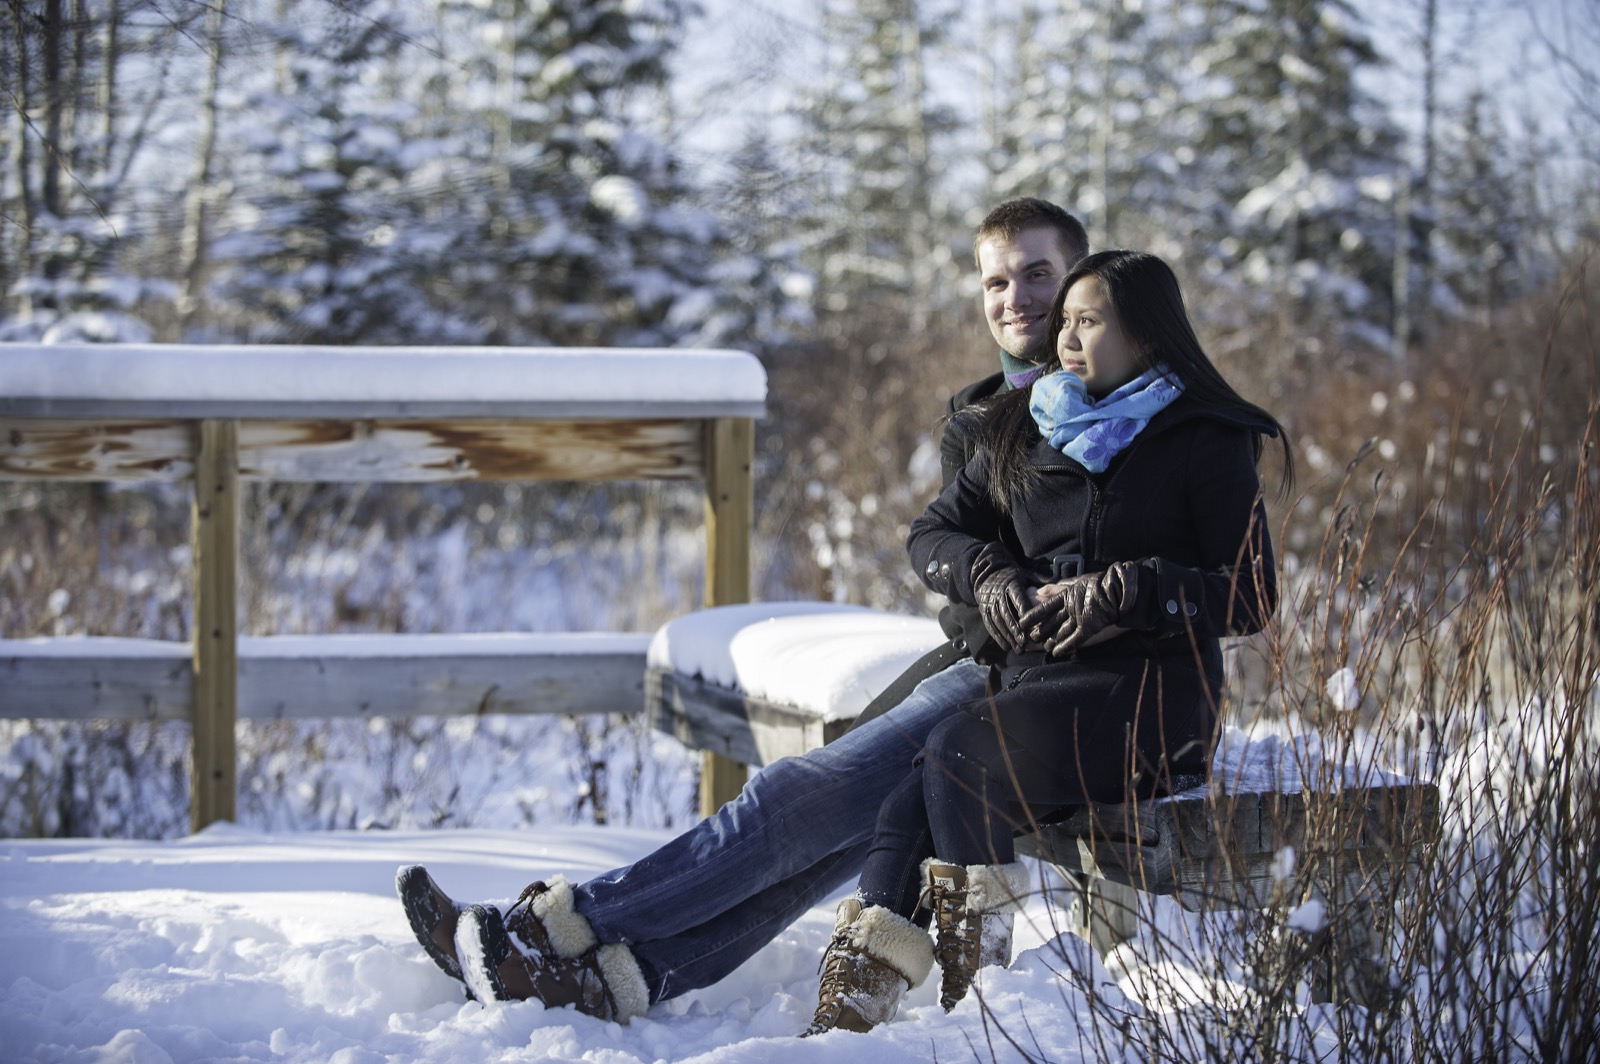 victoria-wedding-photographers-calgary-winter-engagement-proposal-11.jpg